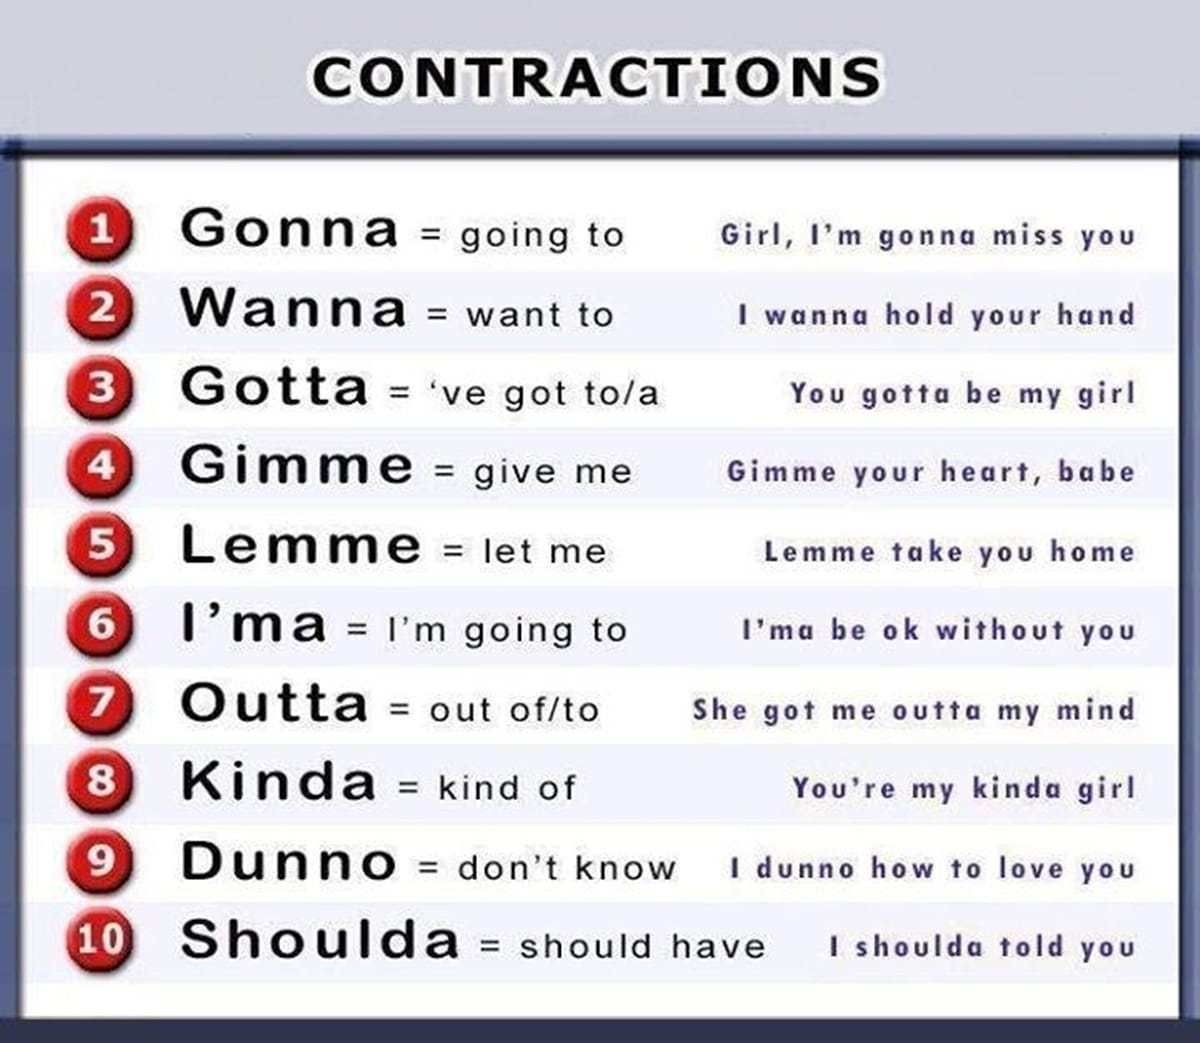 Do You Want to Speak English Faster? Short form, English